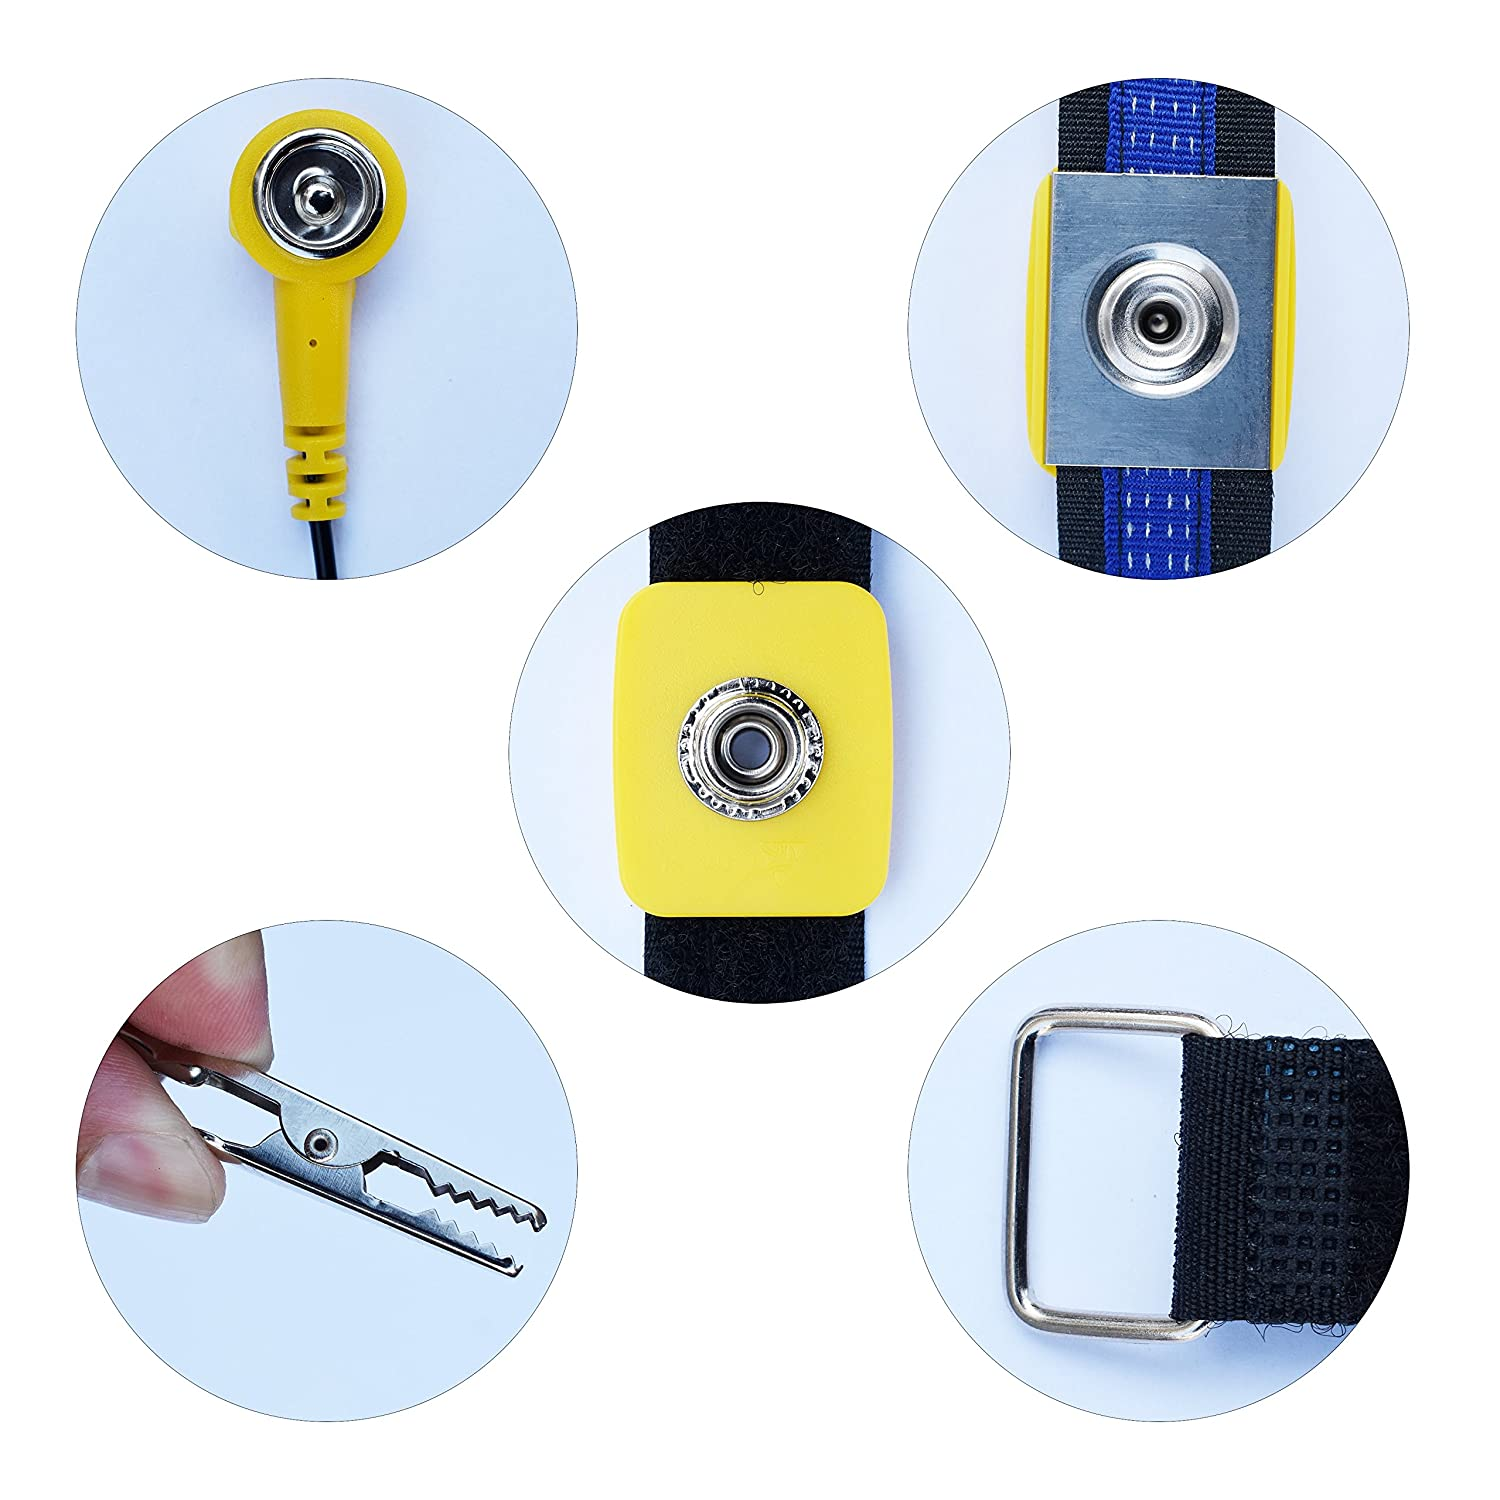 4 Packs Reusable ESD Anti-Static Wrist Straps with Alligator Clip for Grounding Yourself When Working with Sensitive Electronic Device homEdge Anti-Static Wrist Straps Blue and Black Yellow